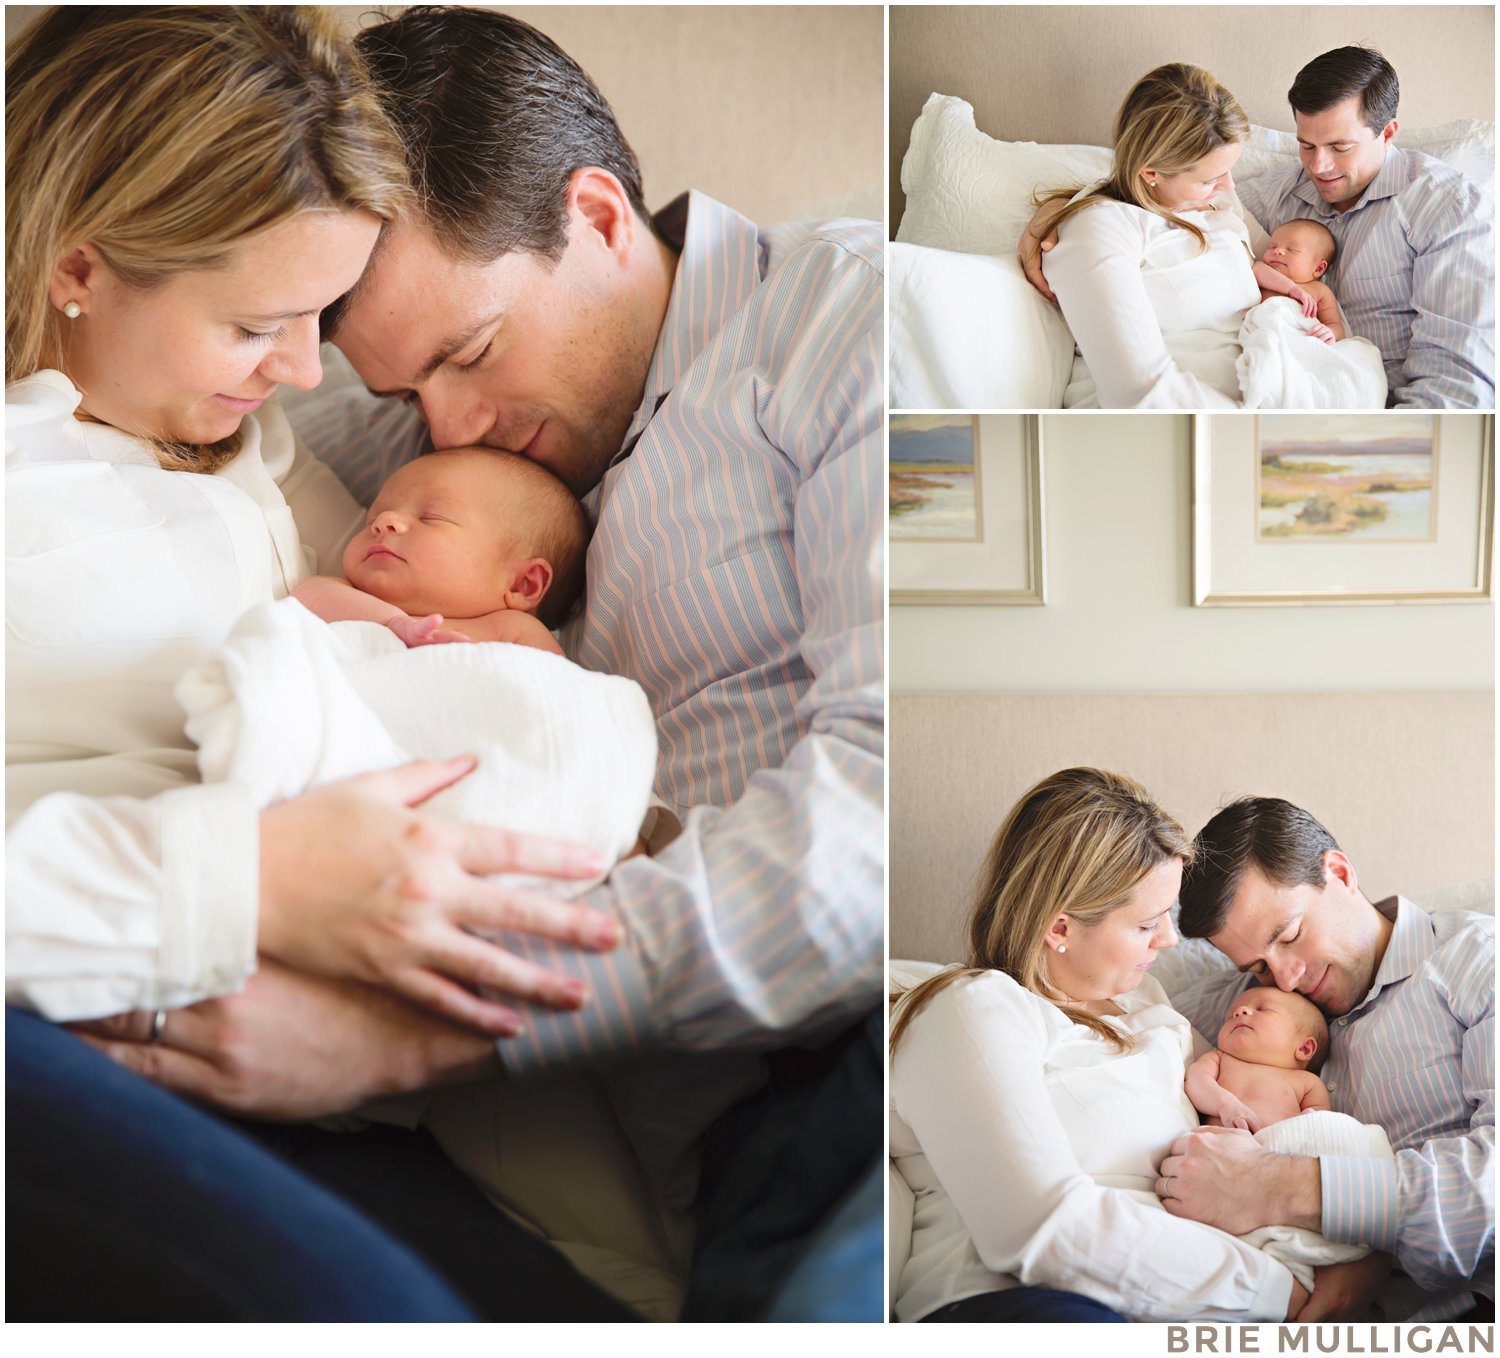 Brie-Mulligan-Lifestyle-Family-and-Newborn-Photographer-Brooklyn-NYC-NJ_0247.jpg